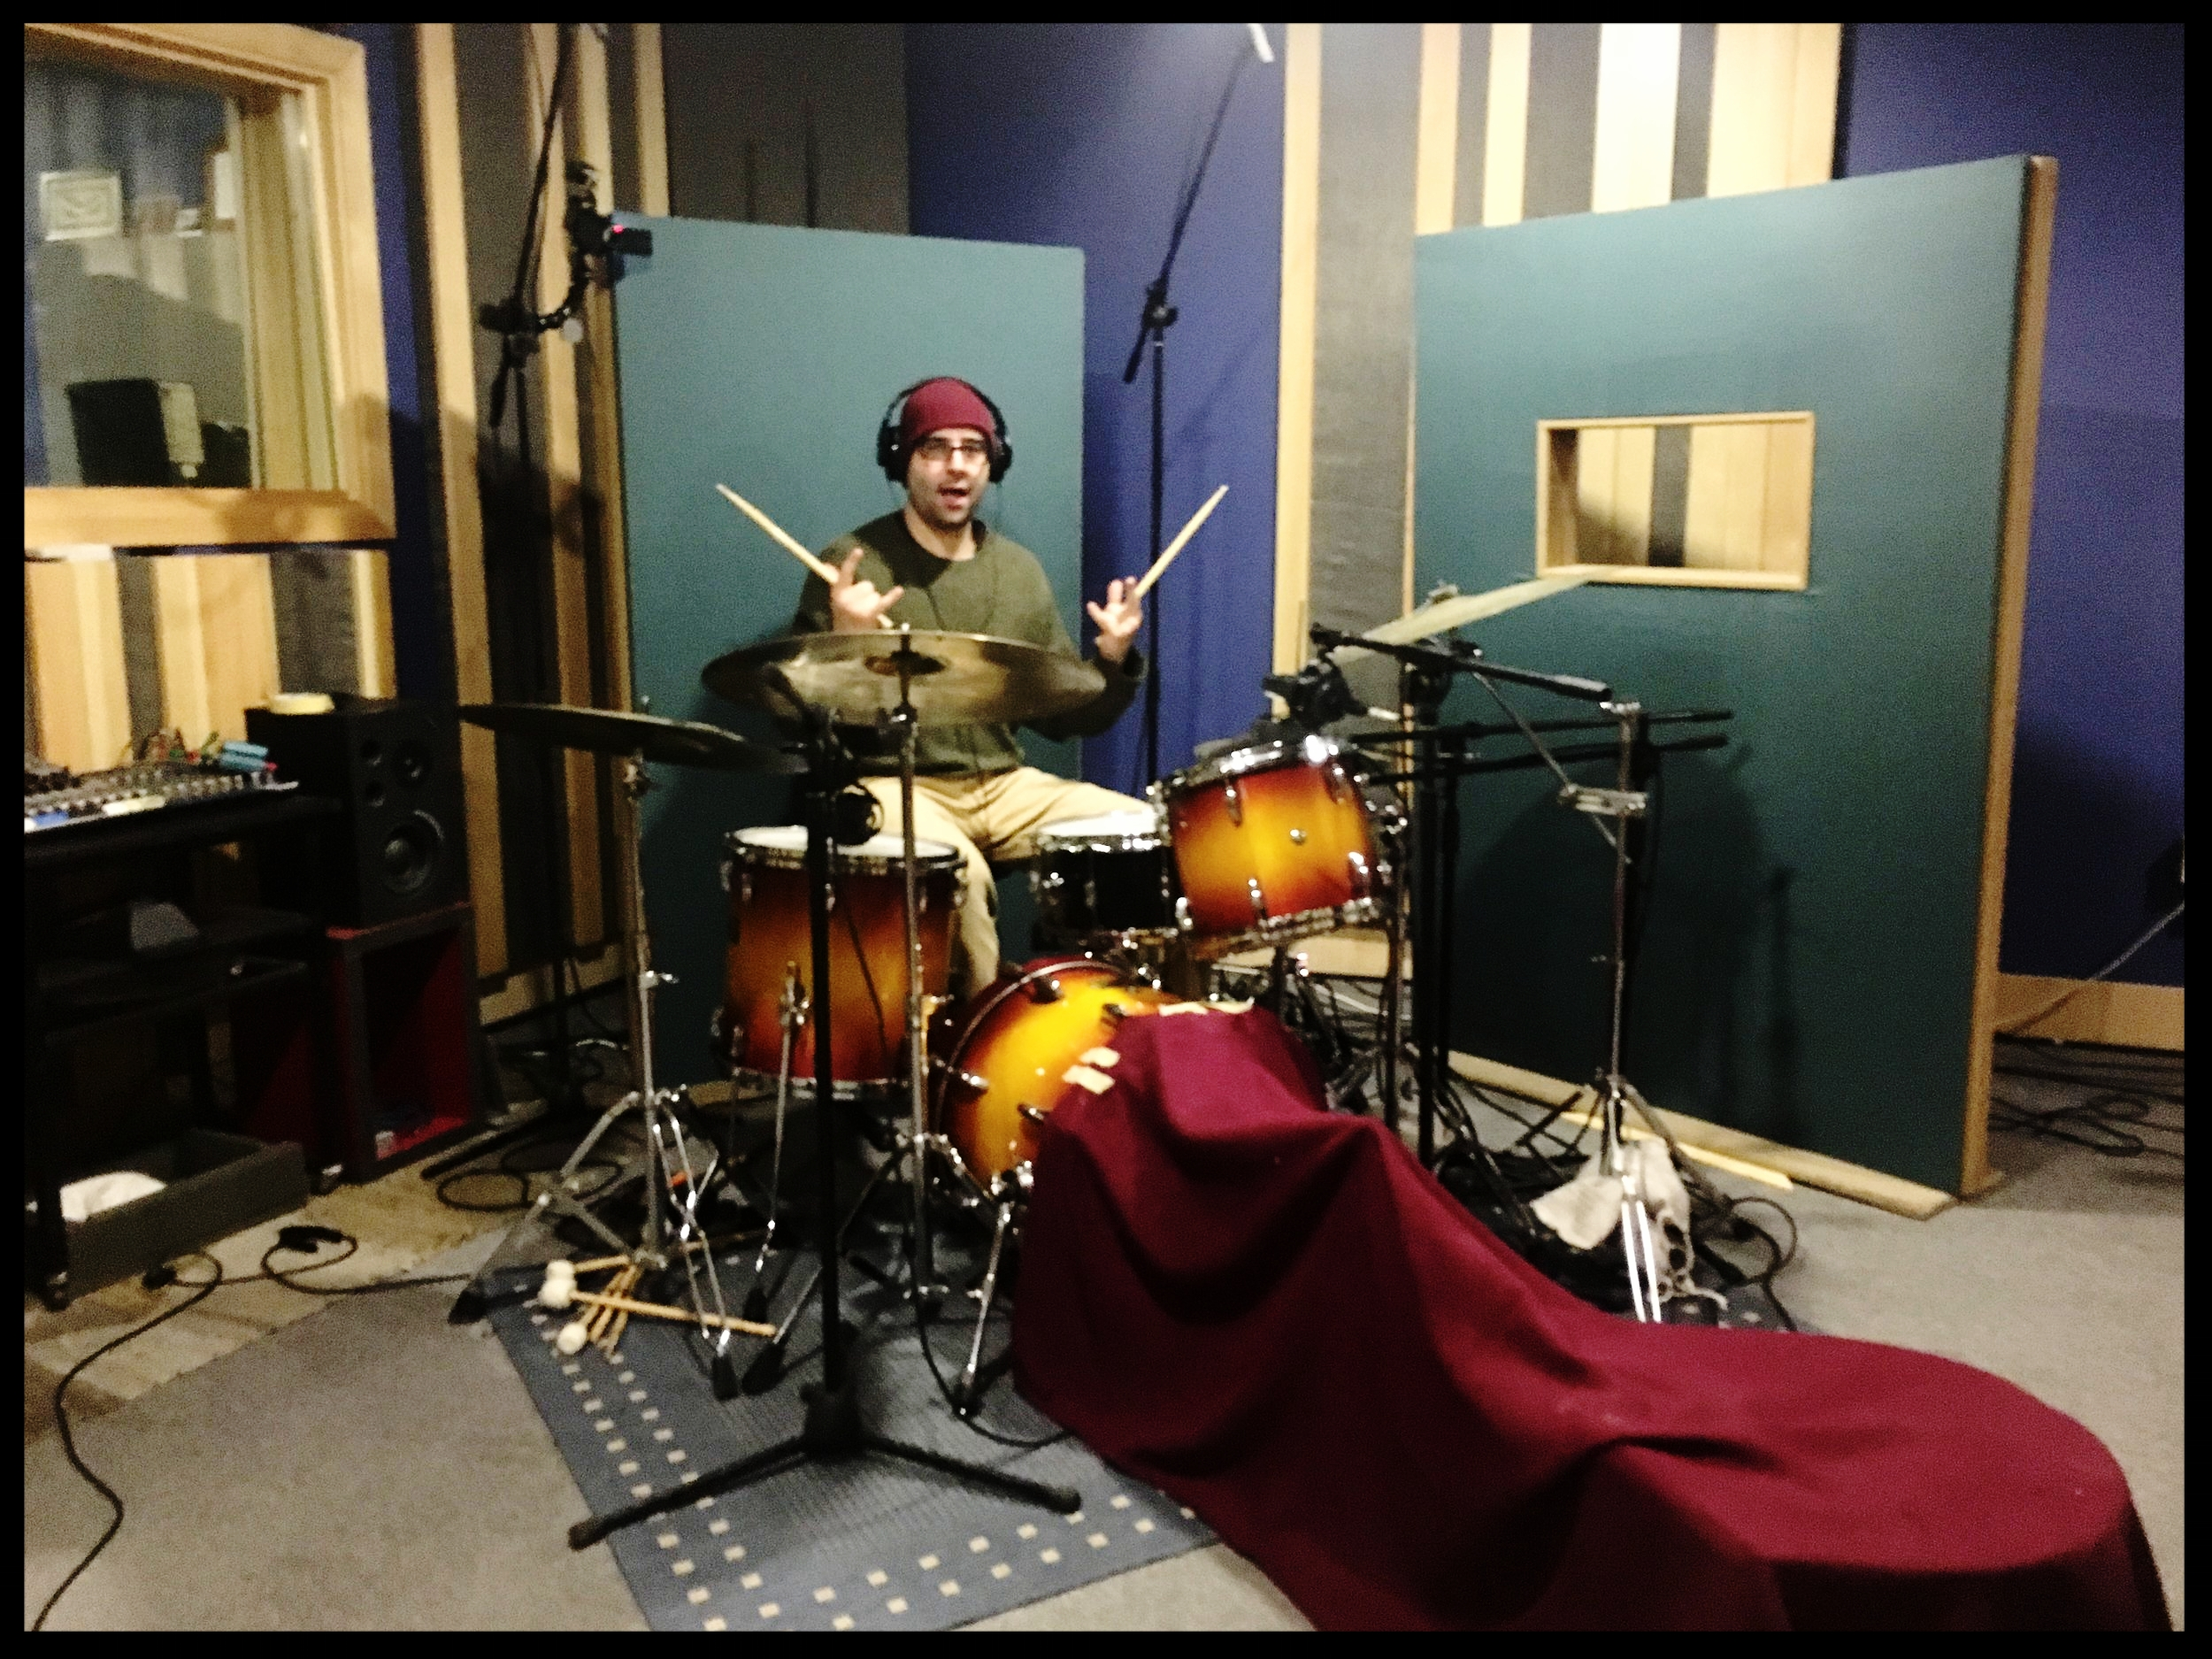 Paolo on Drums